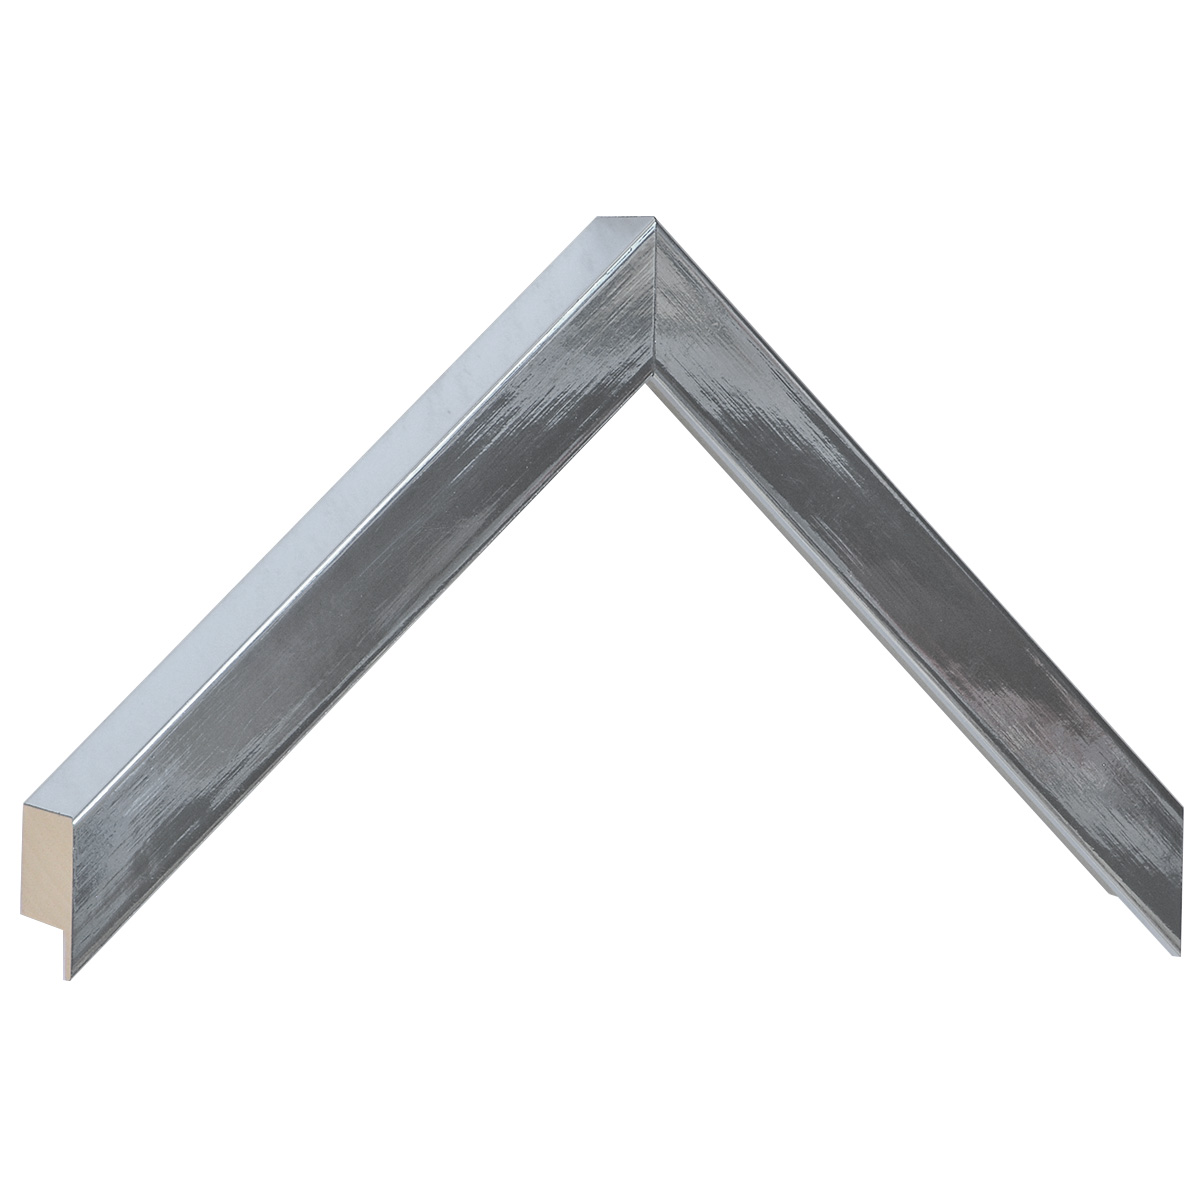 Moulding ayous, width 20mm height 32 - brighr silver